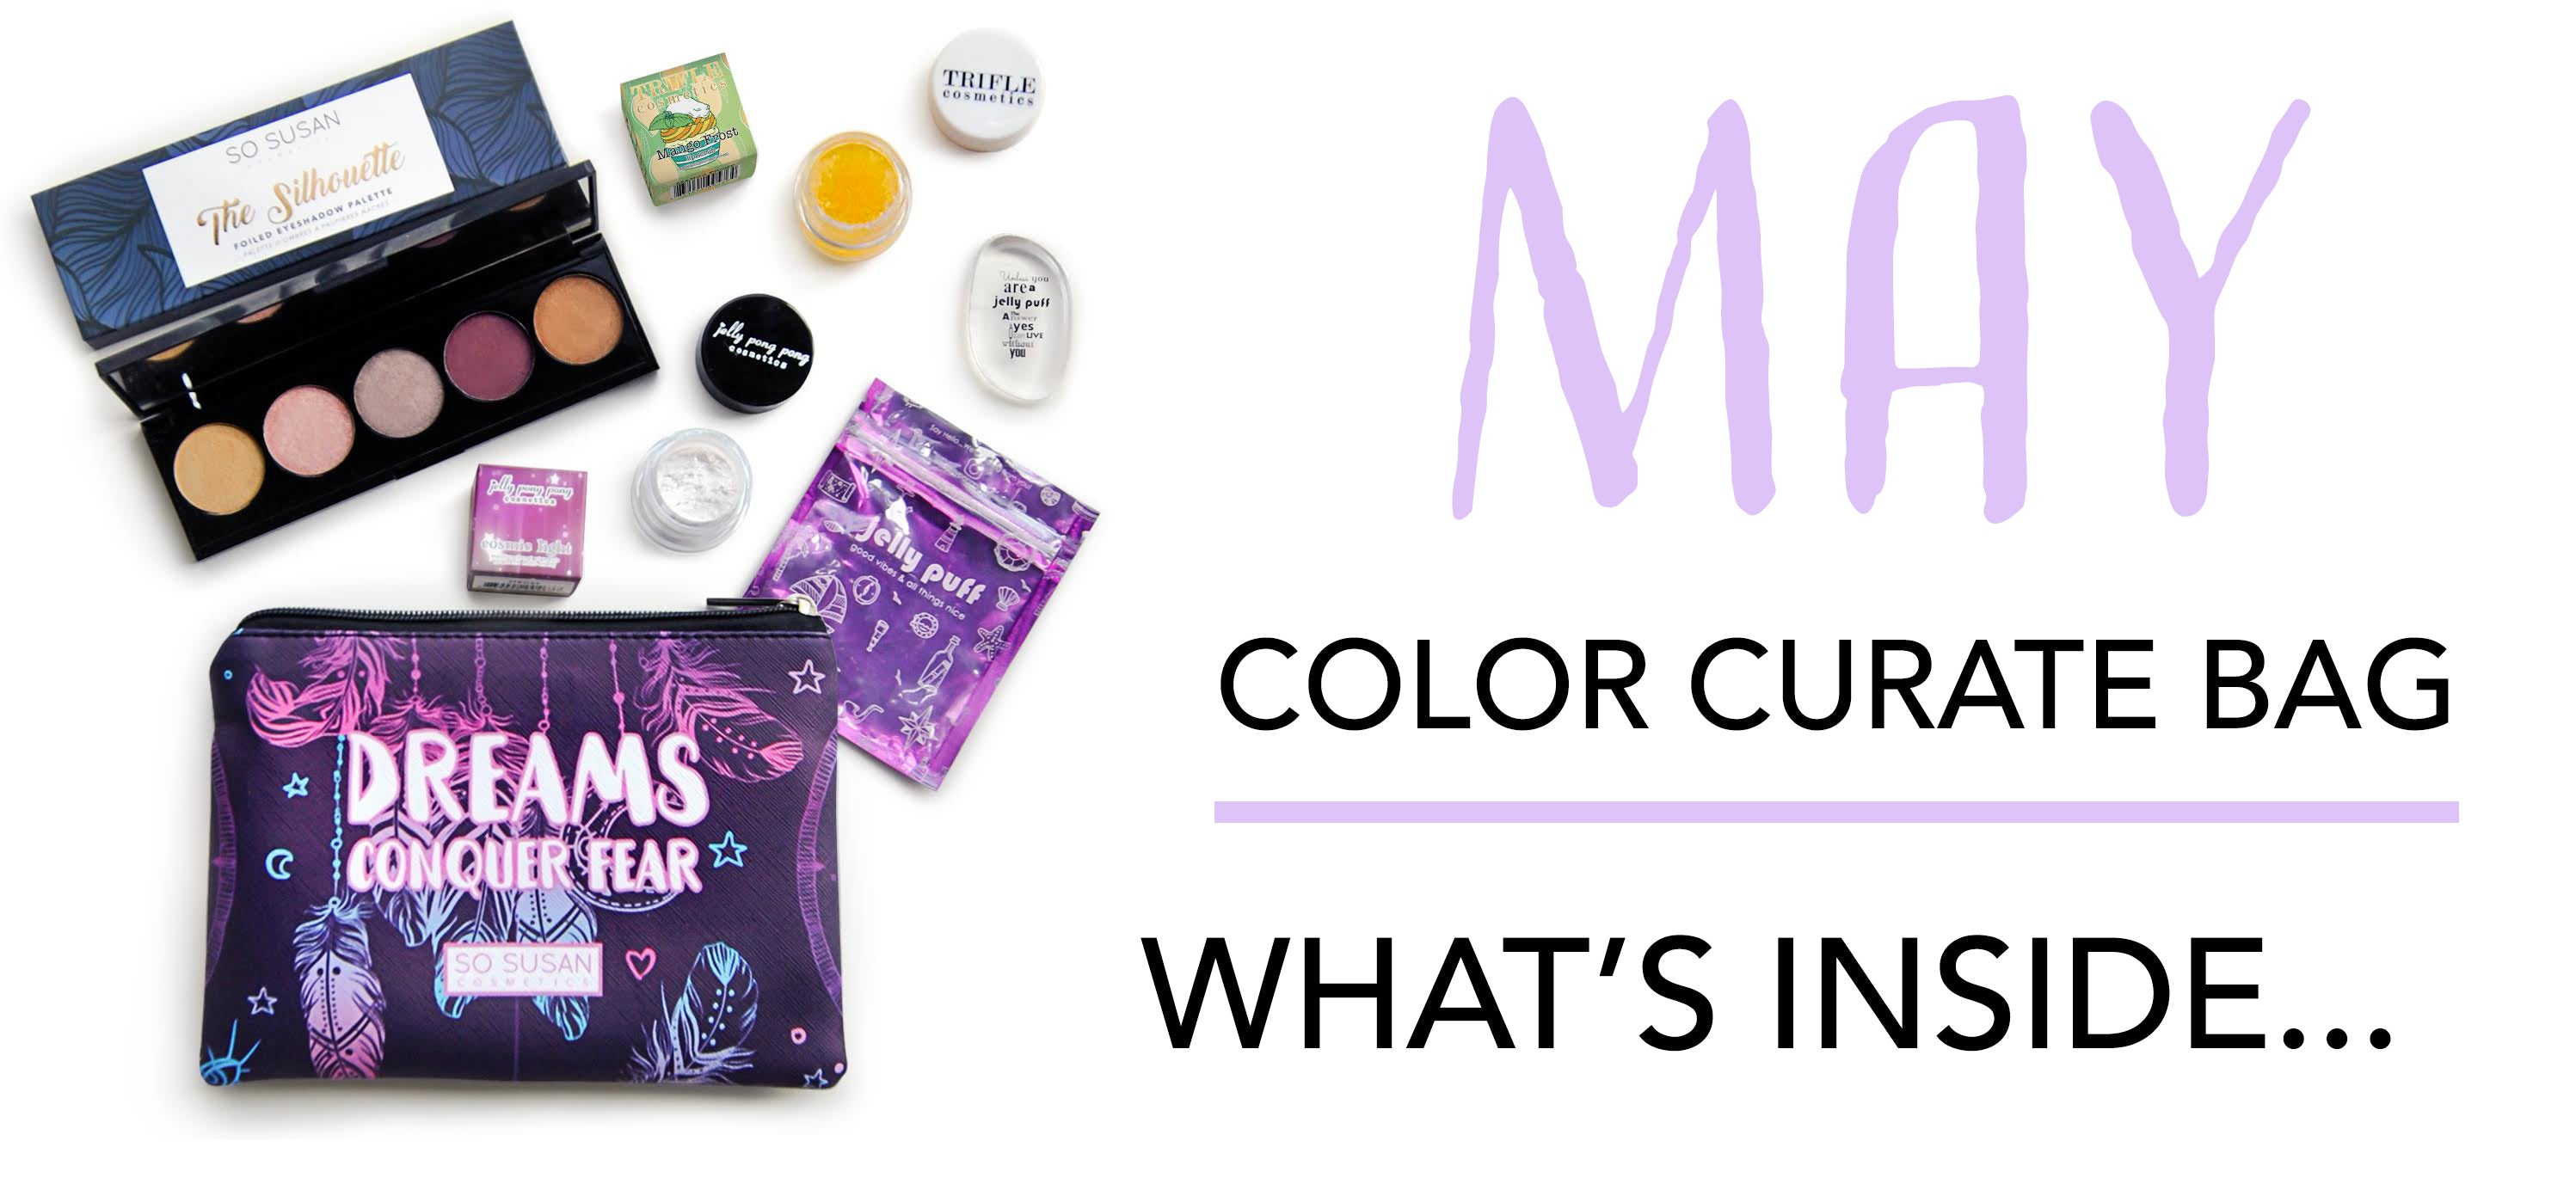 Color Curate Bag: May 2018